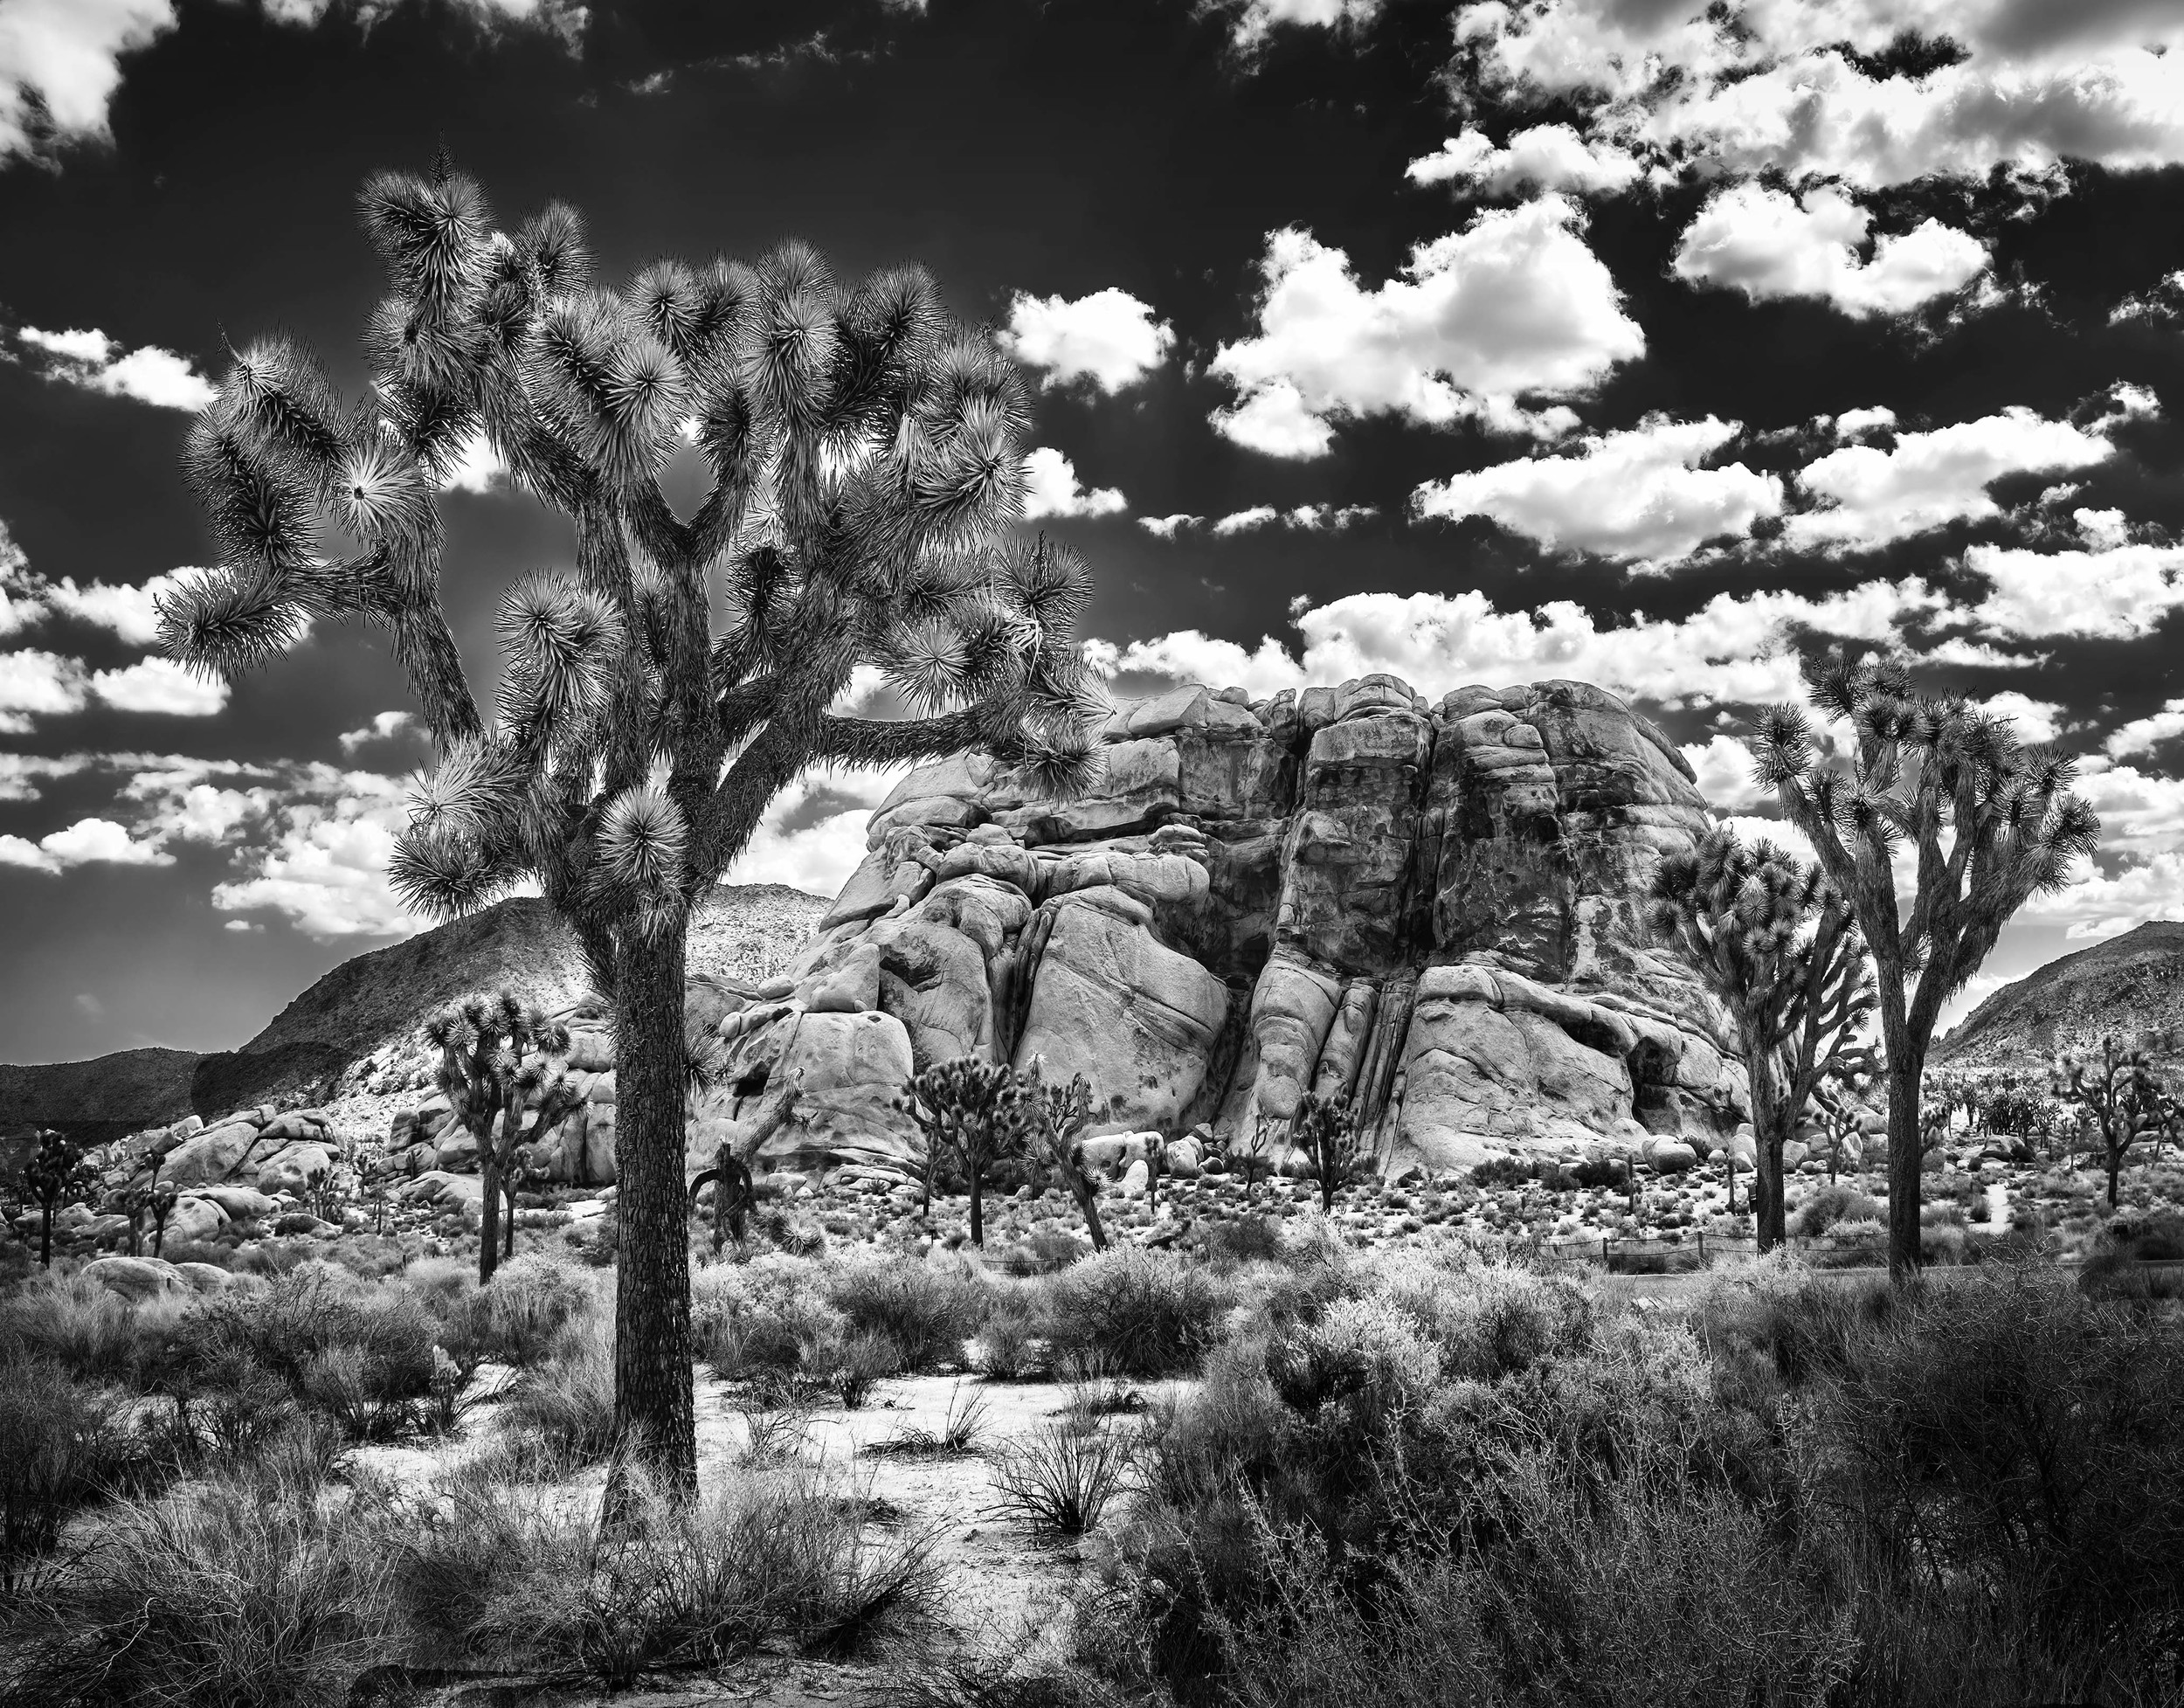 Joshua Tree Topaz (10.75 X 13.75) B&W Effecys 2DSCF9258 adjust copy